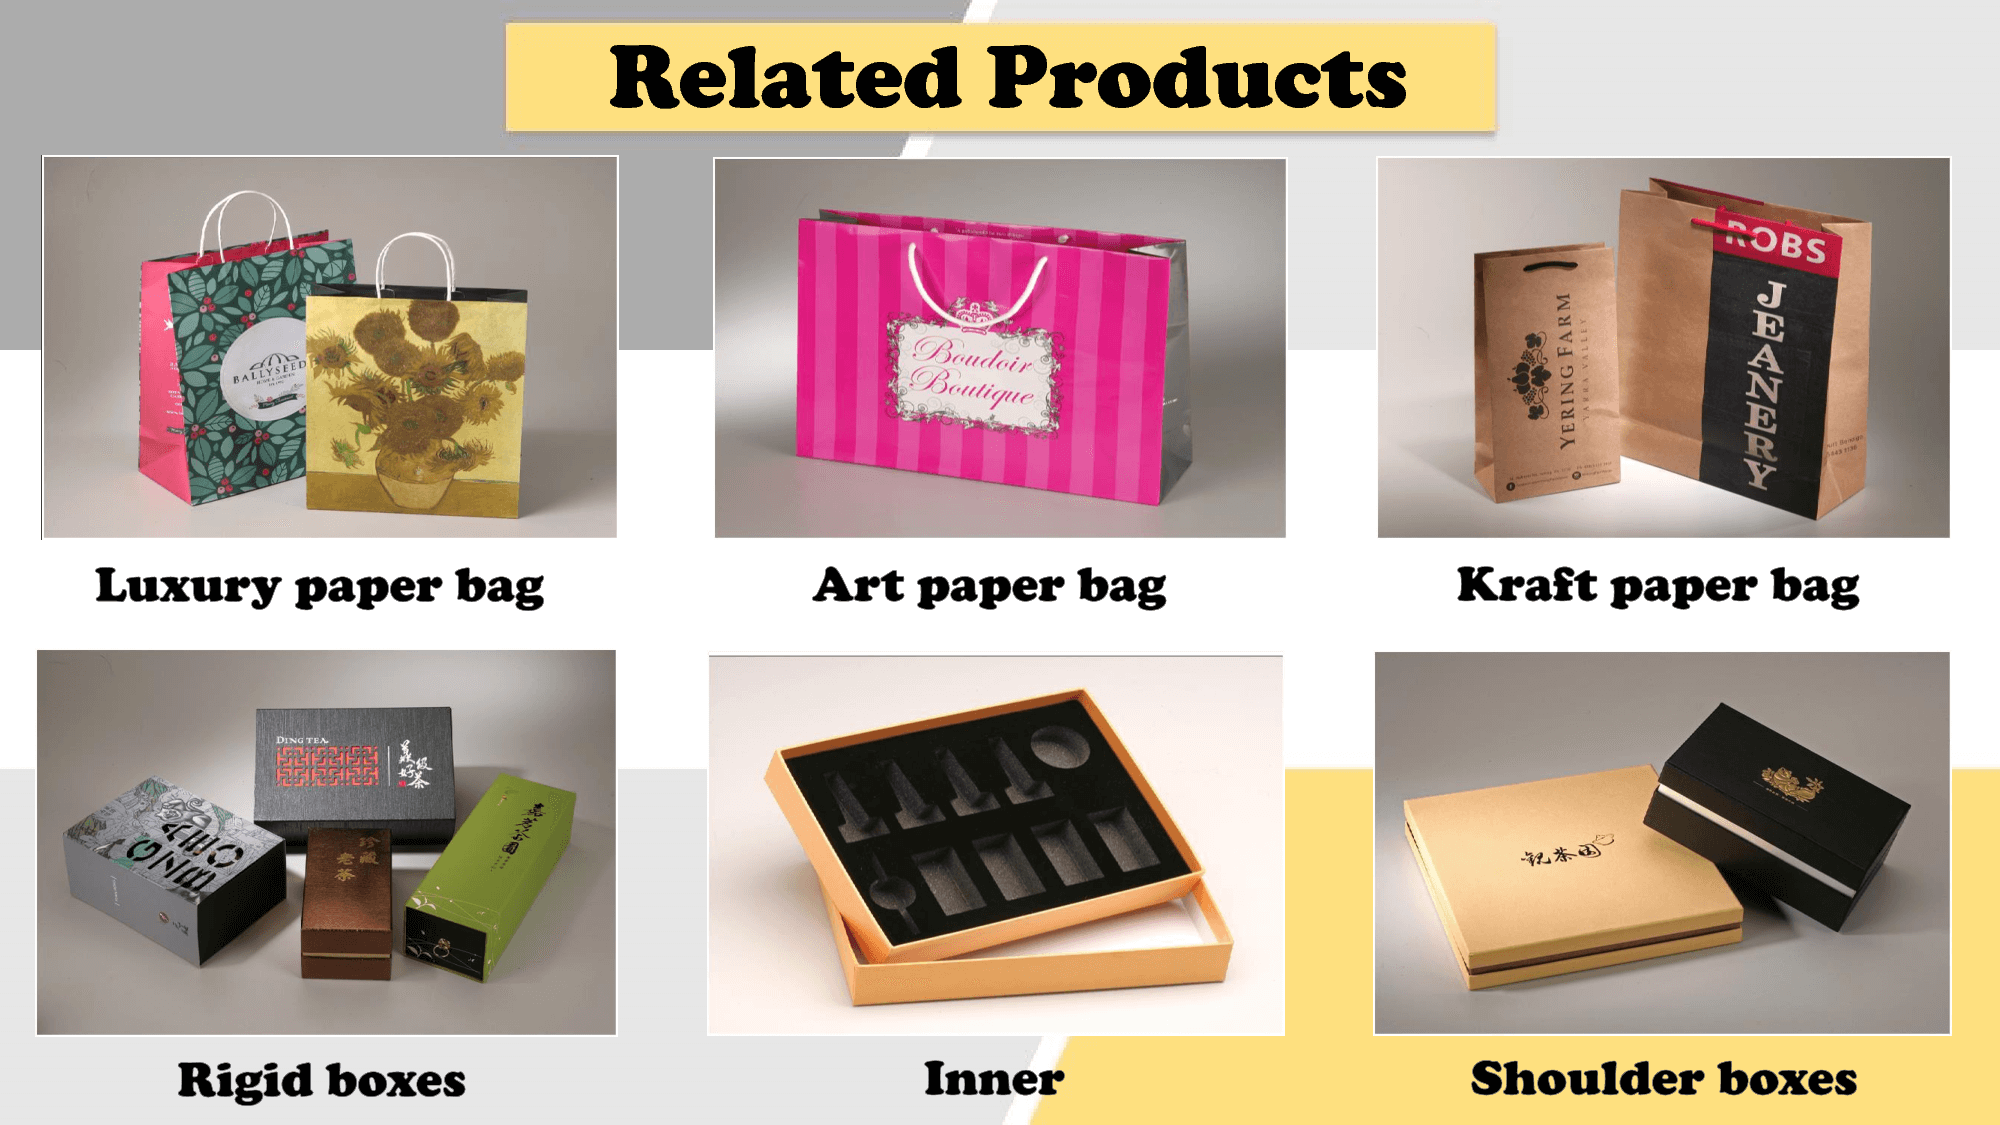 paperbag_related products_syncmen